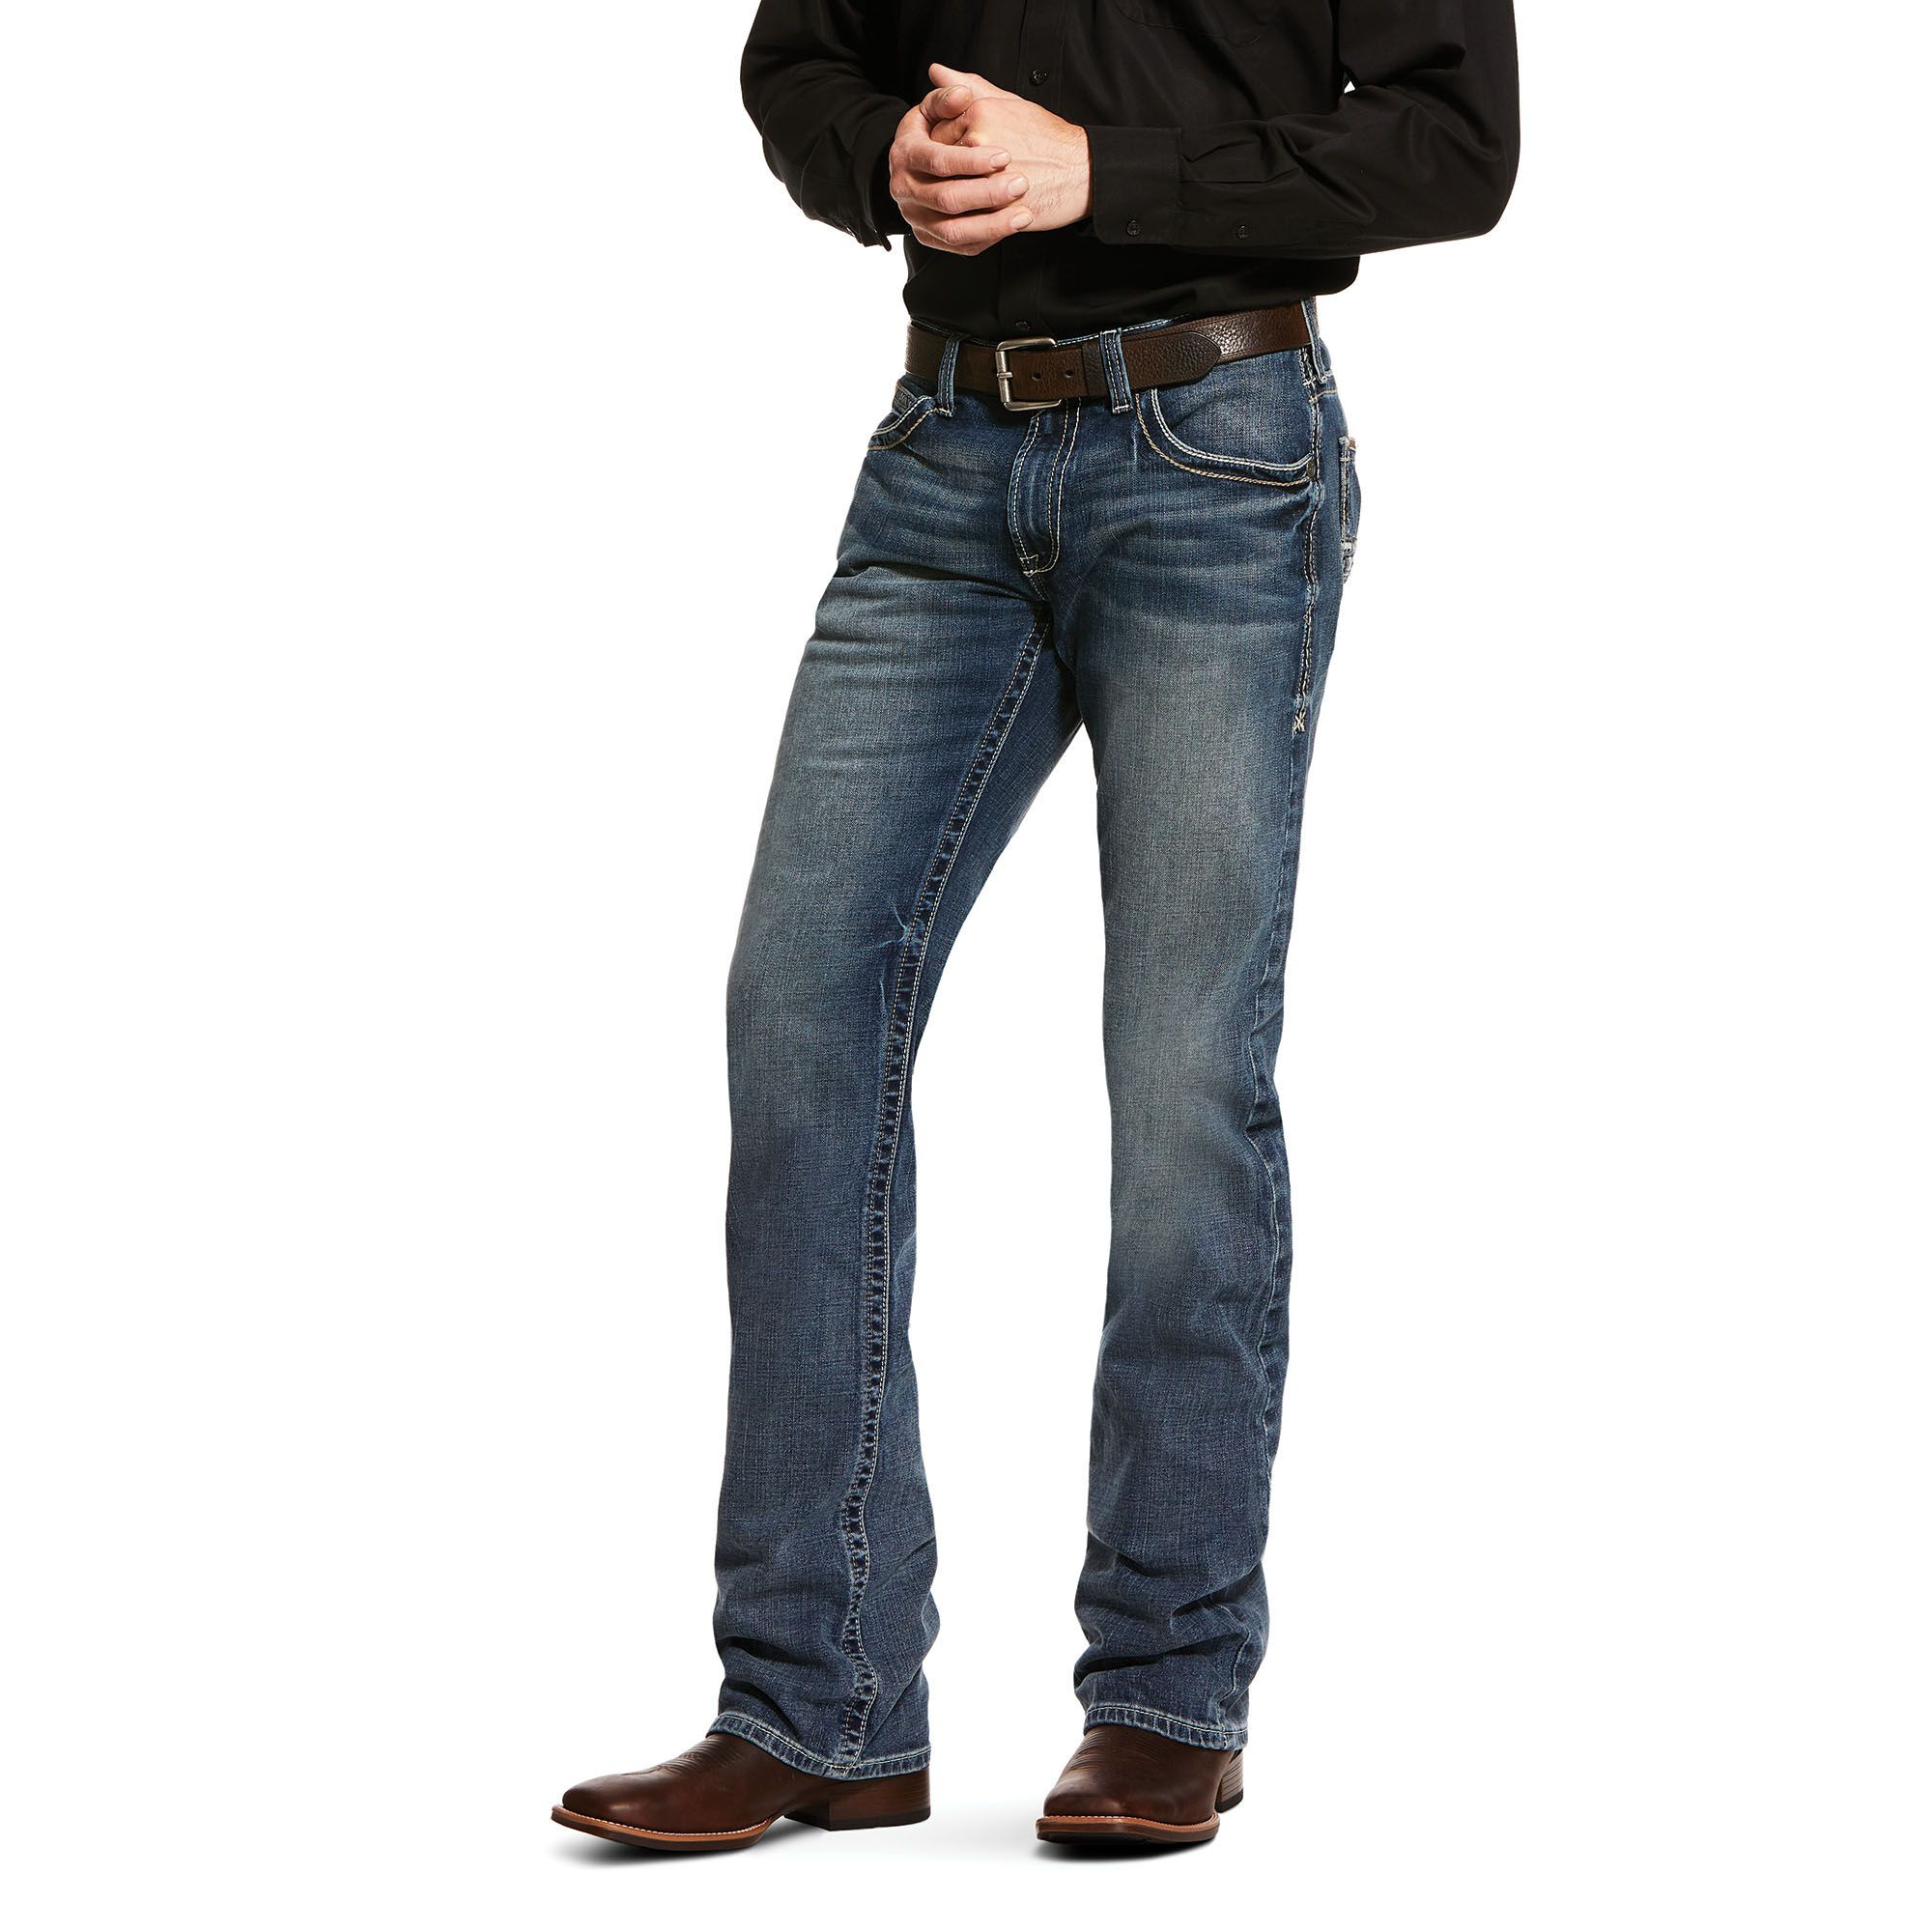 Men's M5 Slim Stretch Adkins Stackable Straight Leg Jeans in Lennox Cotton, 31 X 32 32″ by Ariat – Products